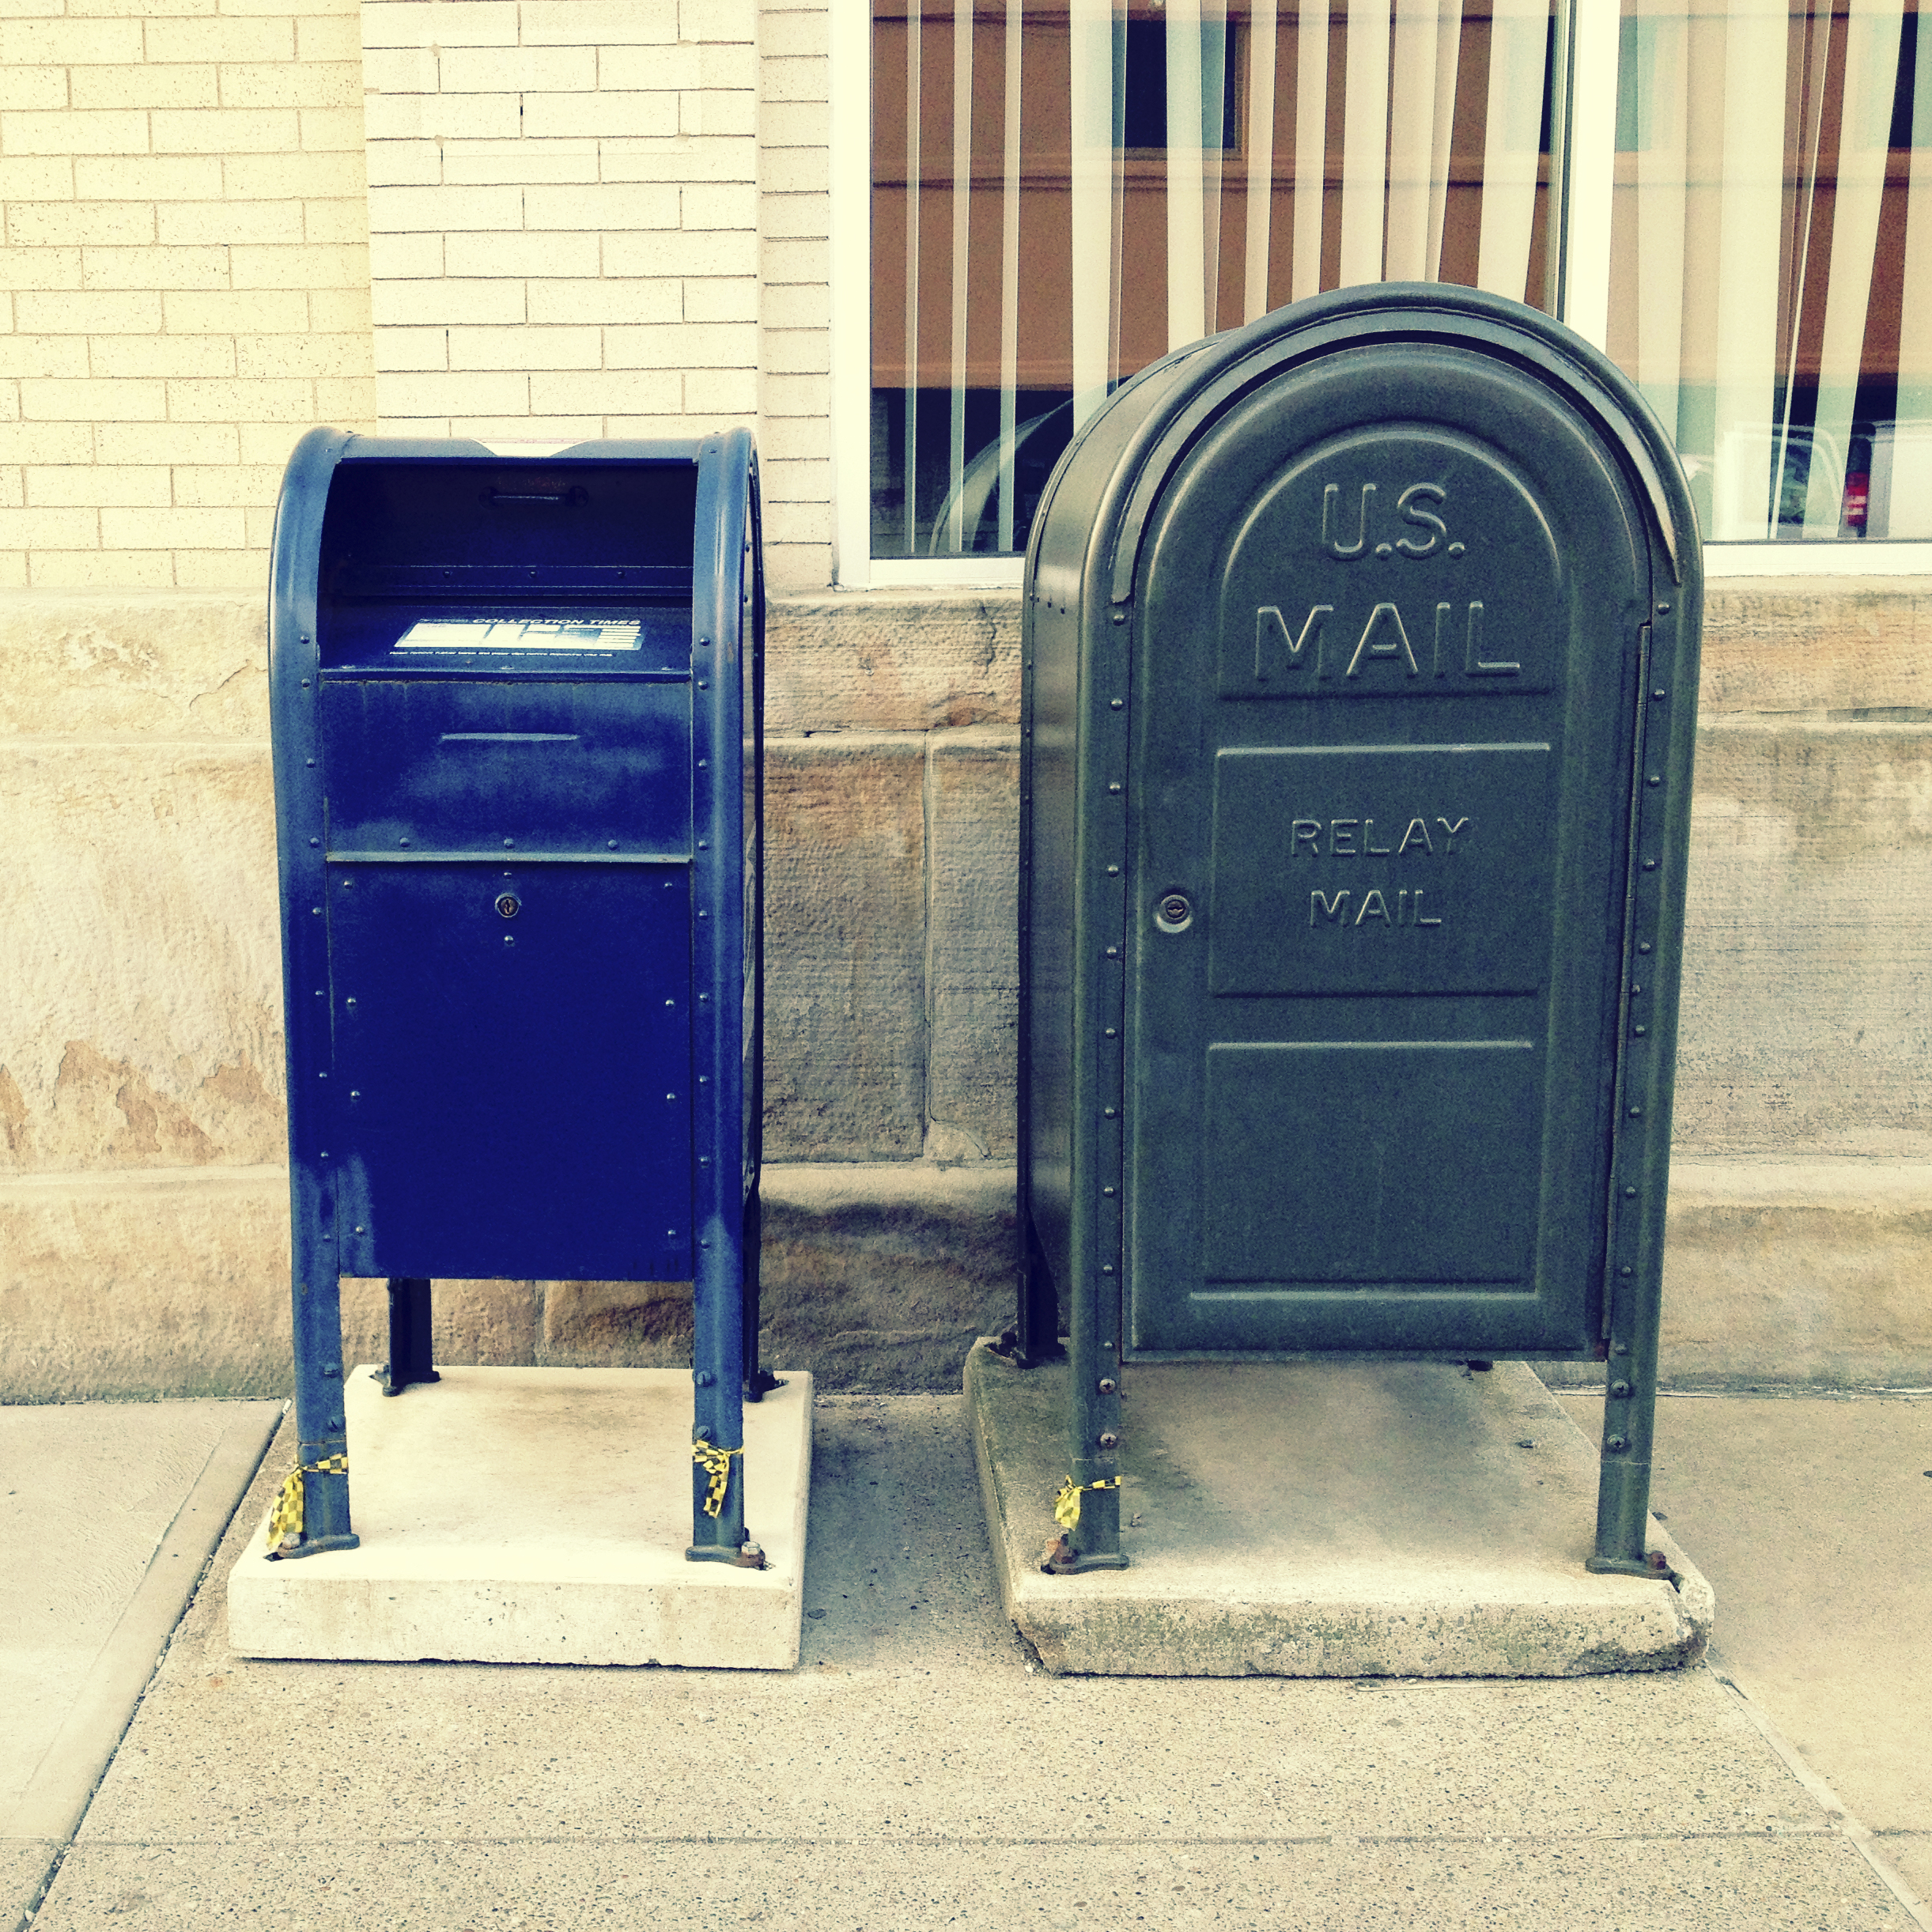 United States Postal Service mailbox. (Getty Images)